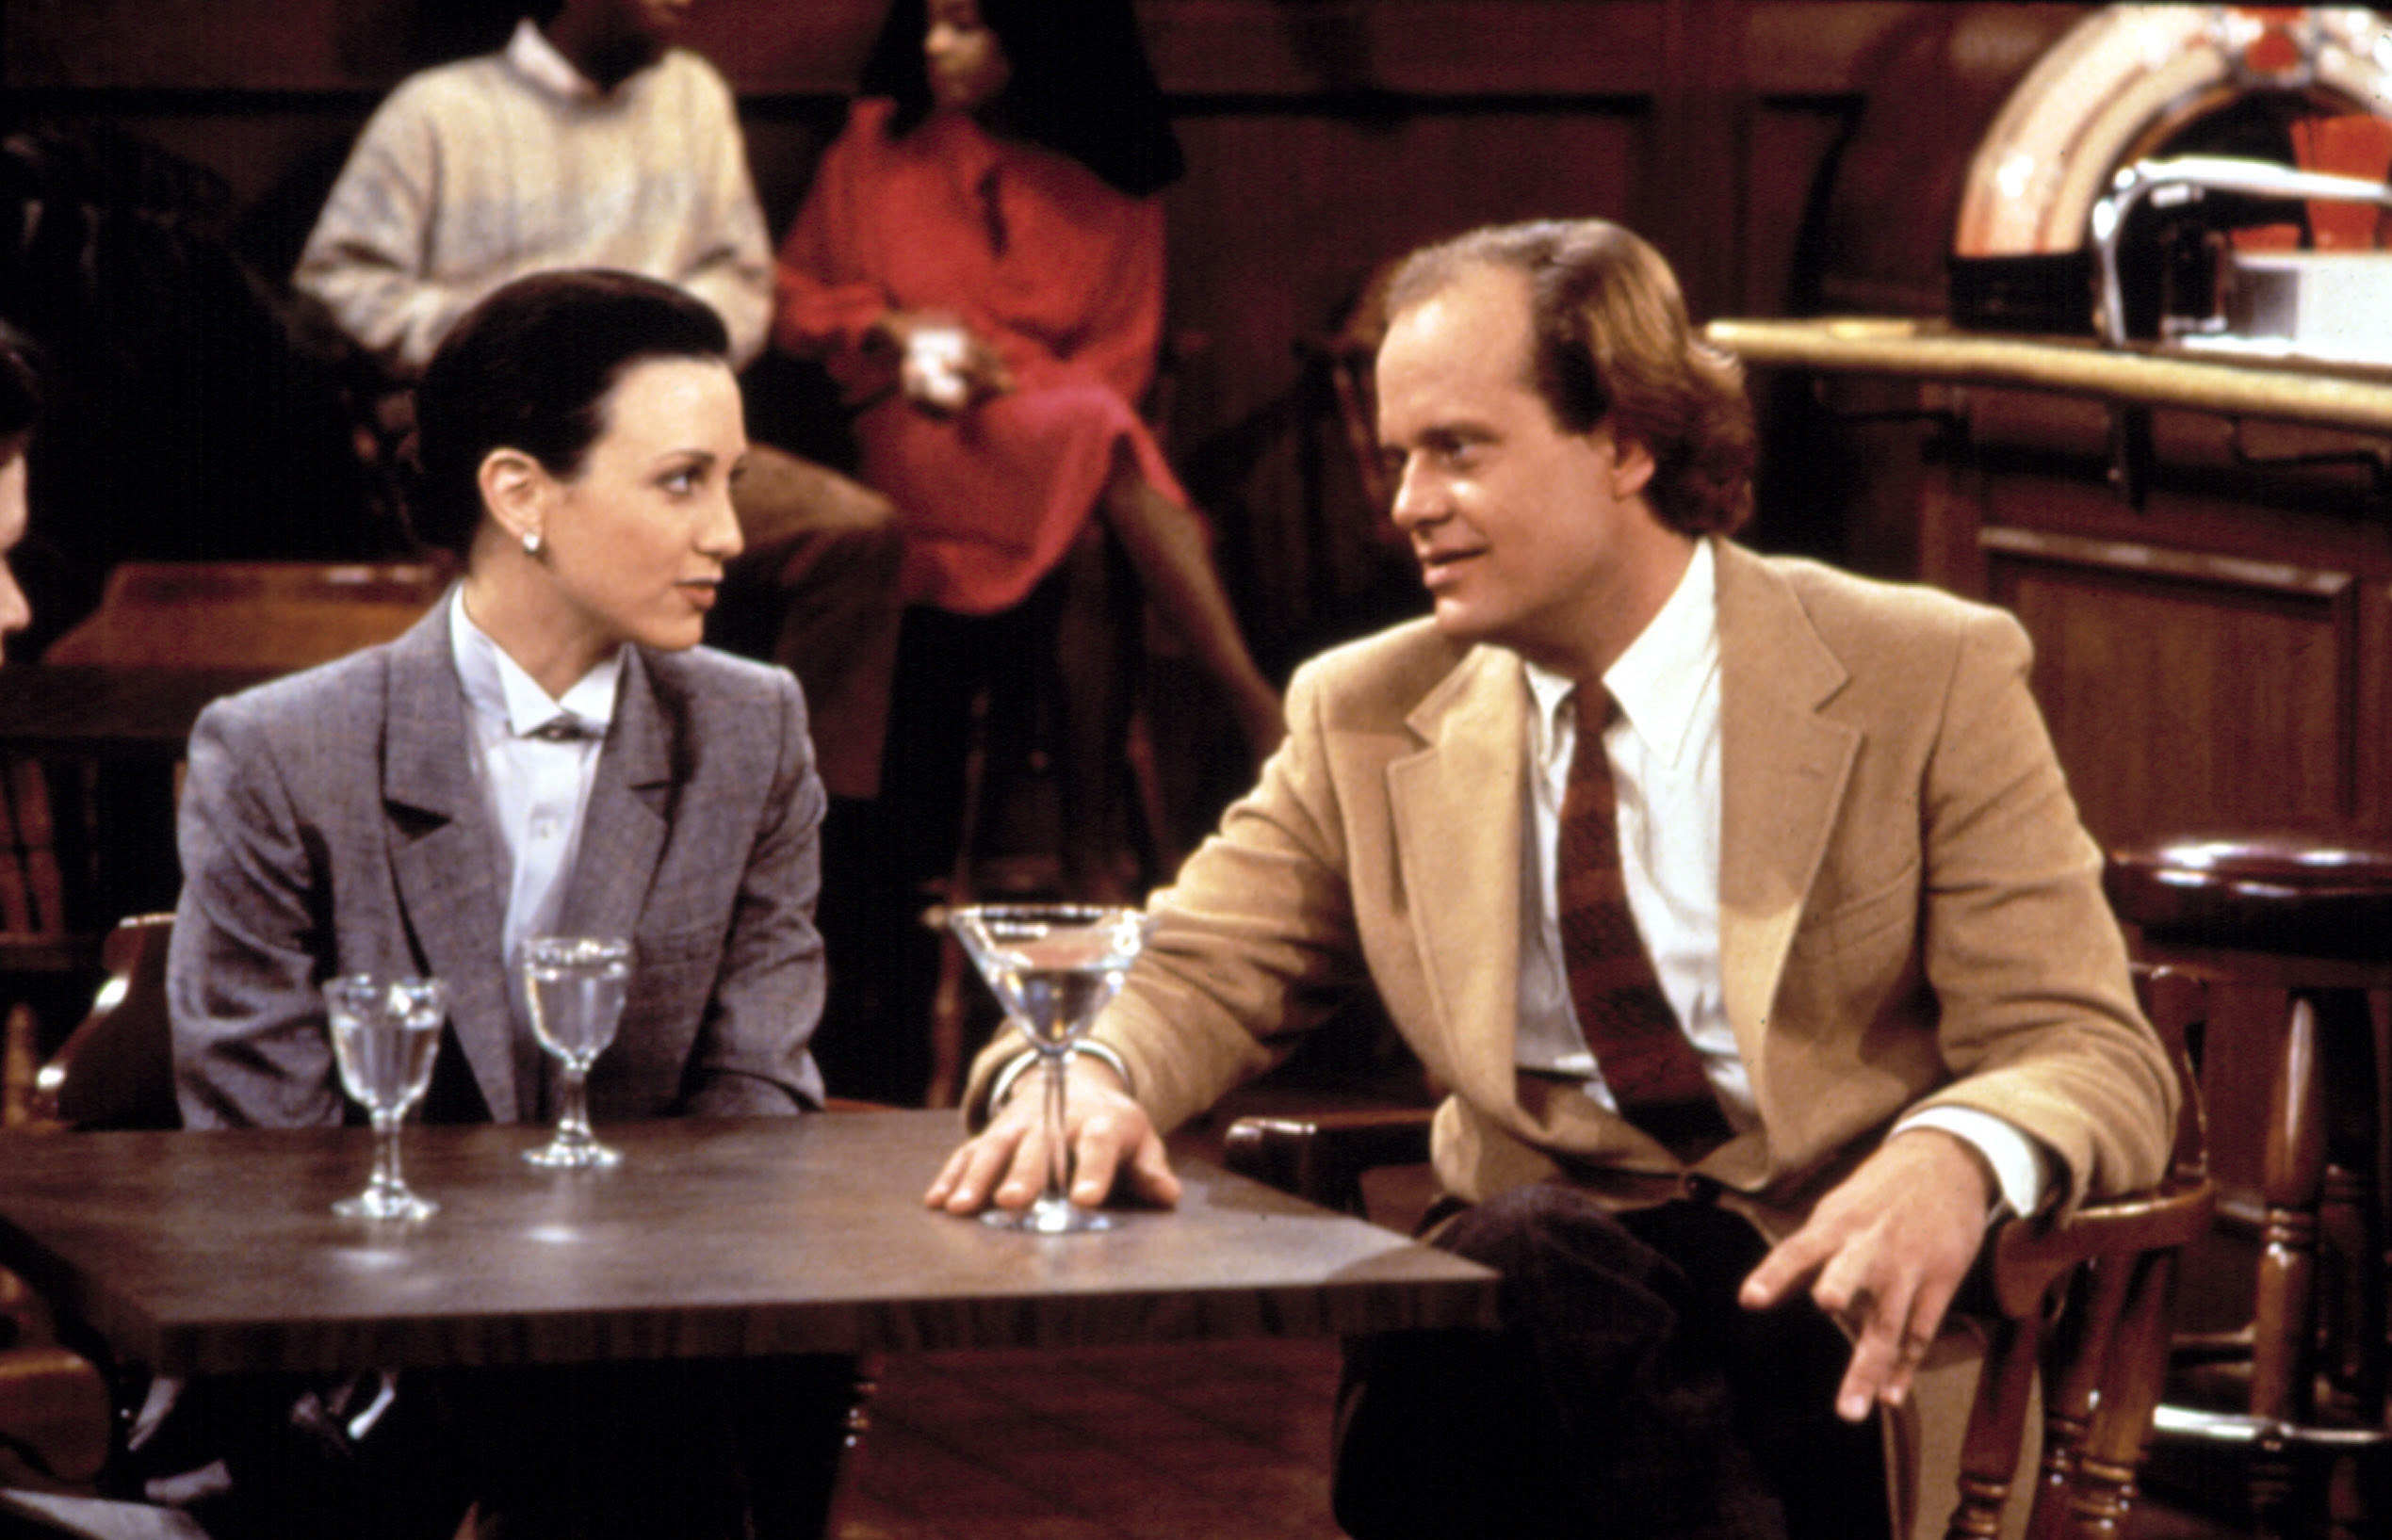 """Frasier and Lilith having a drink in """"Cheers"""""""